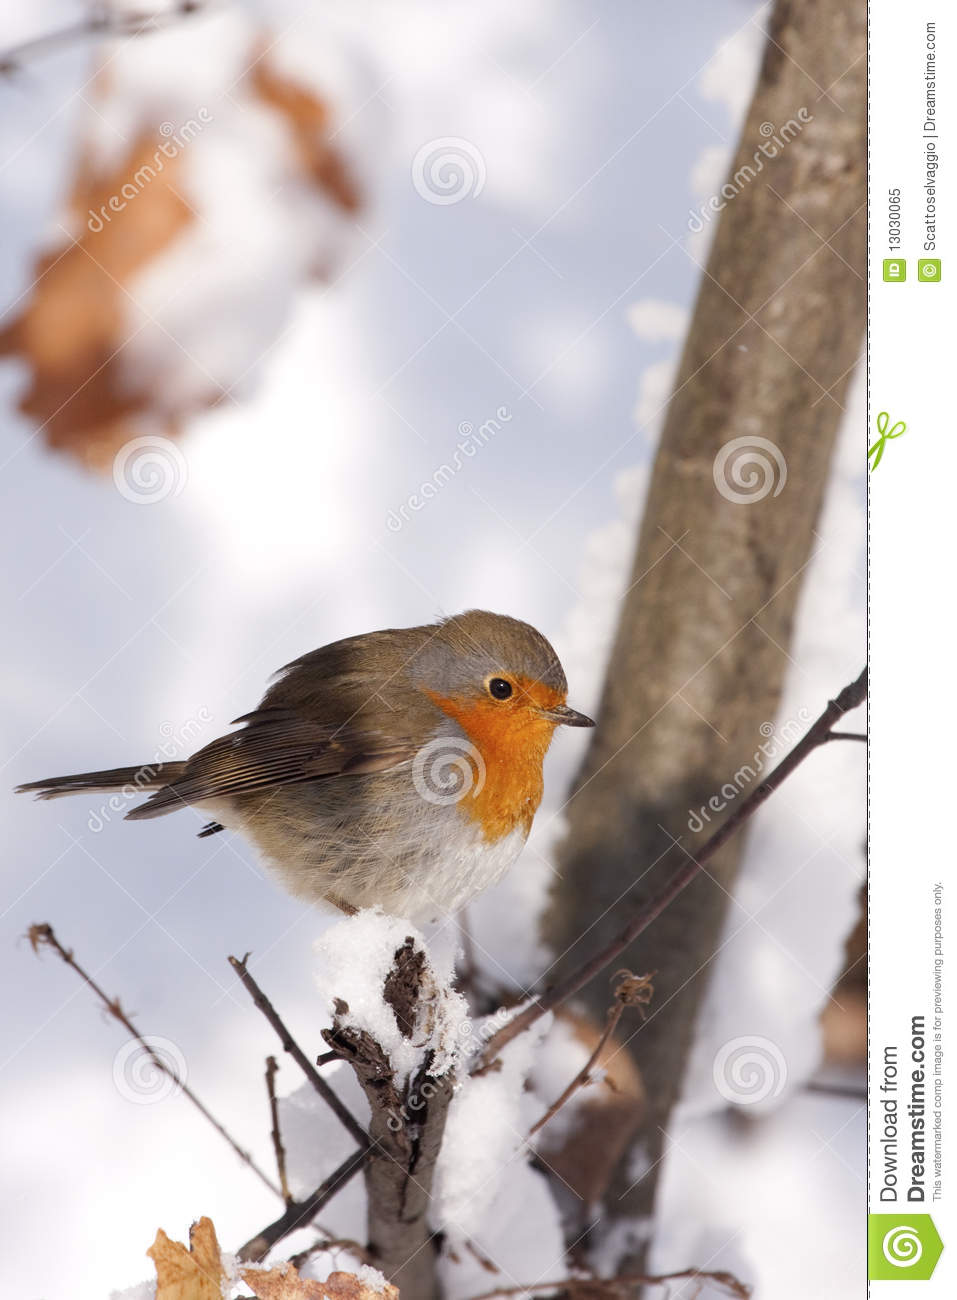 European Robin (Erithacus rubecula). An old British folk tale seeks to explain the Robin's distinctive breast. Legend has it that when Jesus was dying on the cross, the Robin, then simply brown in colour, flew to his side and sang into his ear in order to comfort him in his pain. The blood from his wounds stained the Robin's breast, and thereafter all Robins got the mark of Christ's blood upon them.